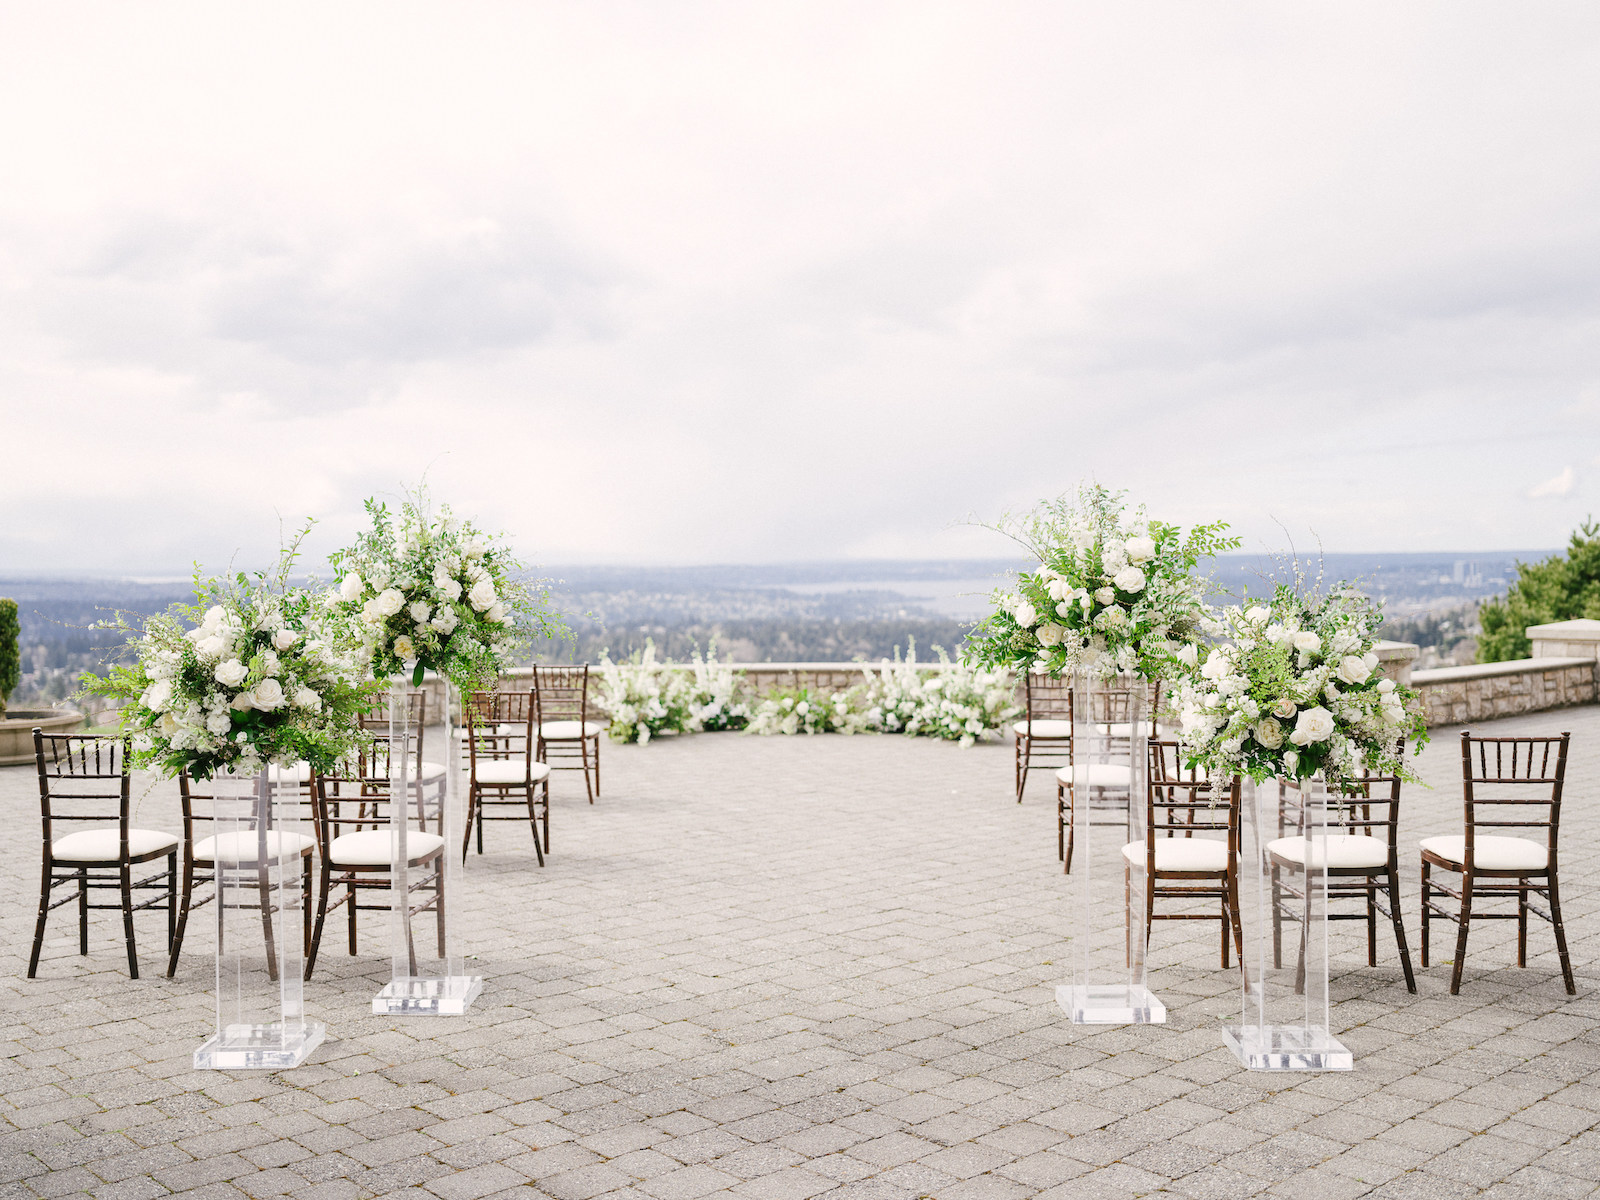 Spring wedding setup at Prestwick Patio at Newcastle Golf Club, with grounded floral arch, and tall white and green floral arrangements at the aisle entrance on top of clear lucite pedestals, with brown Chivari chairs